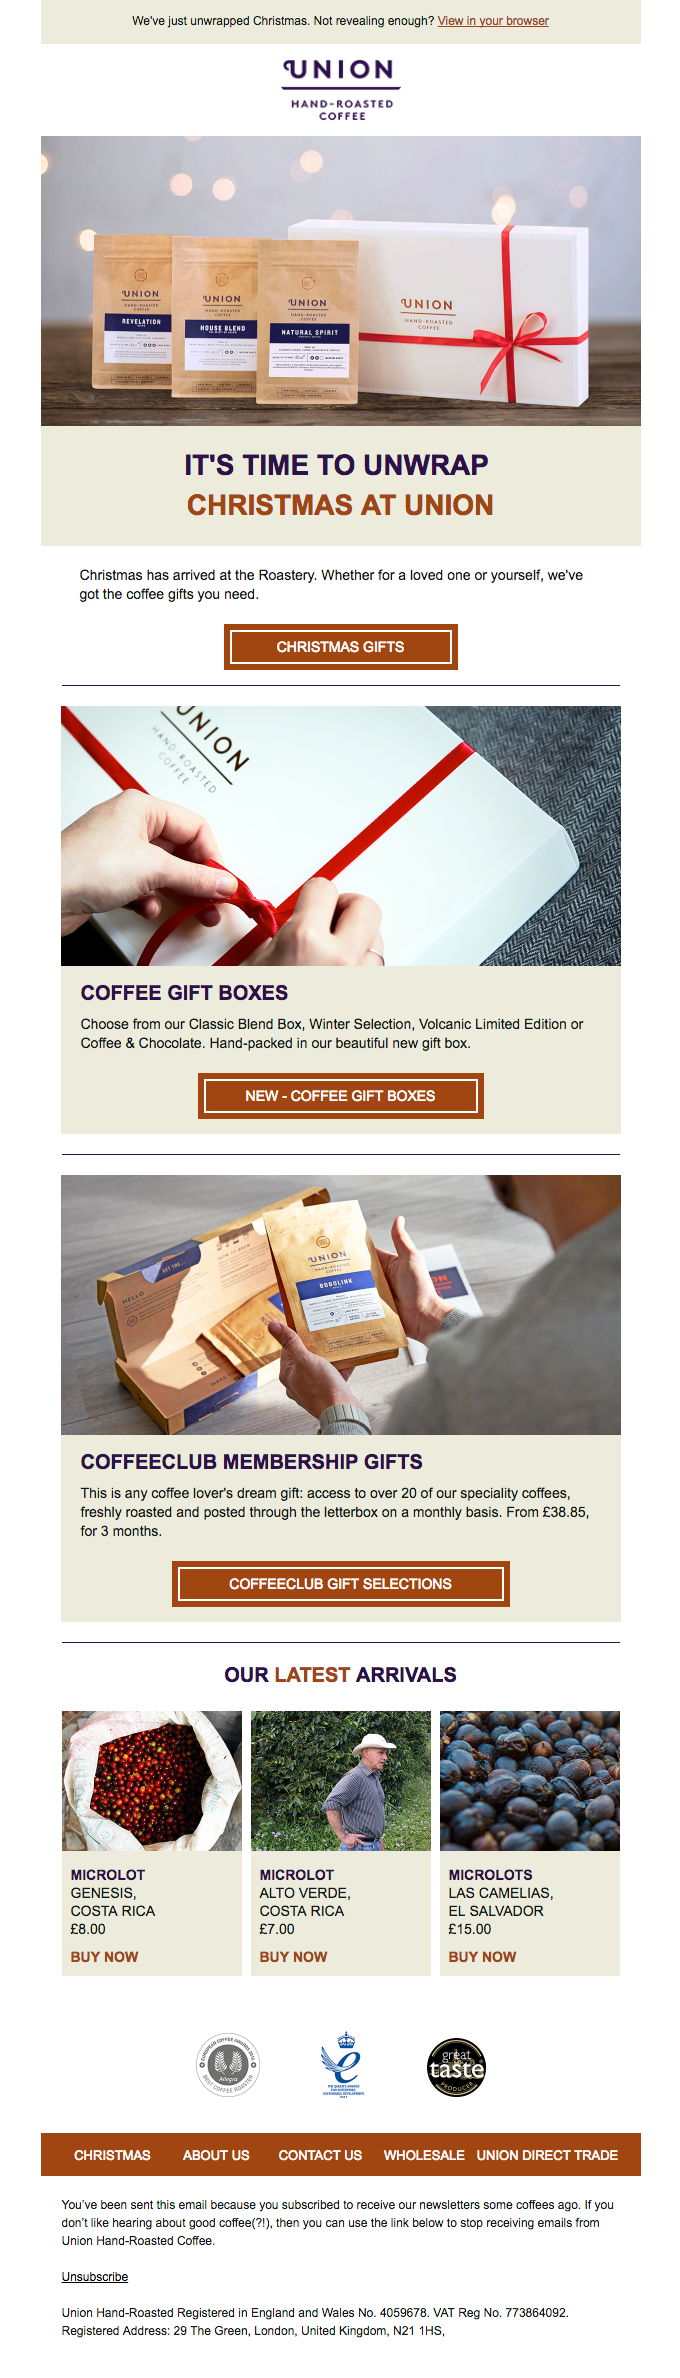 Choose From Our All New Selection of Coffee Gifts